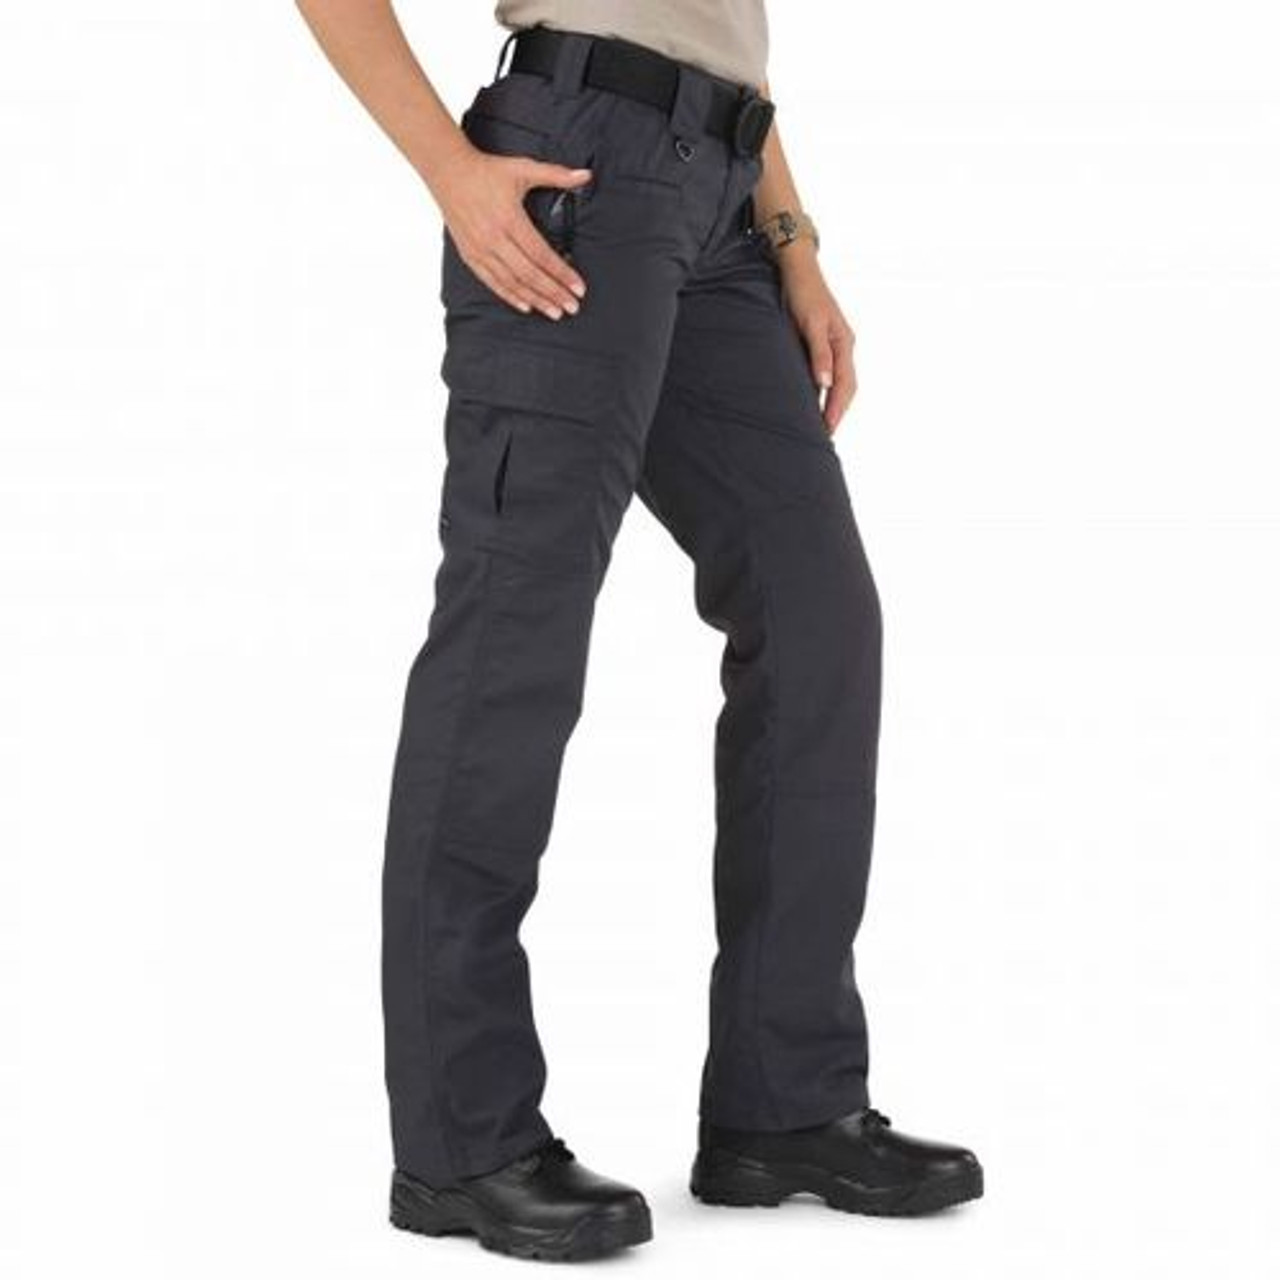 5.11 Tactical 64360 Women's Taclite® Pro Tactical Cargo Pants, Classic/Straight Fit, Polyester/Cotton